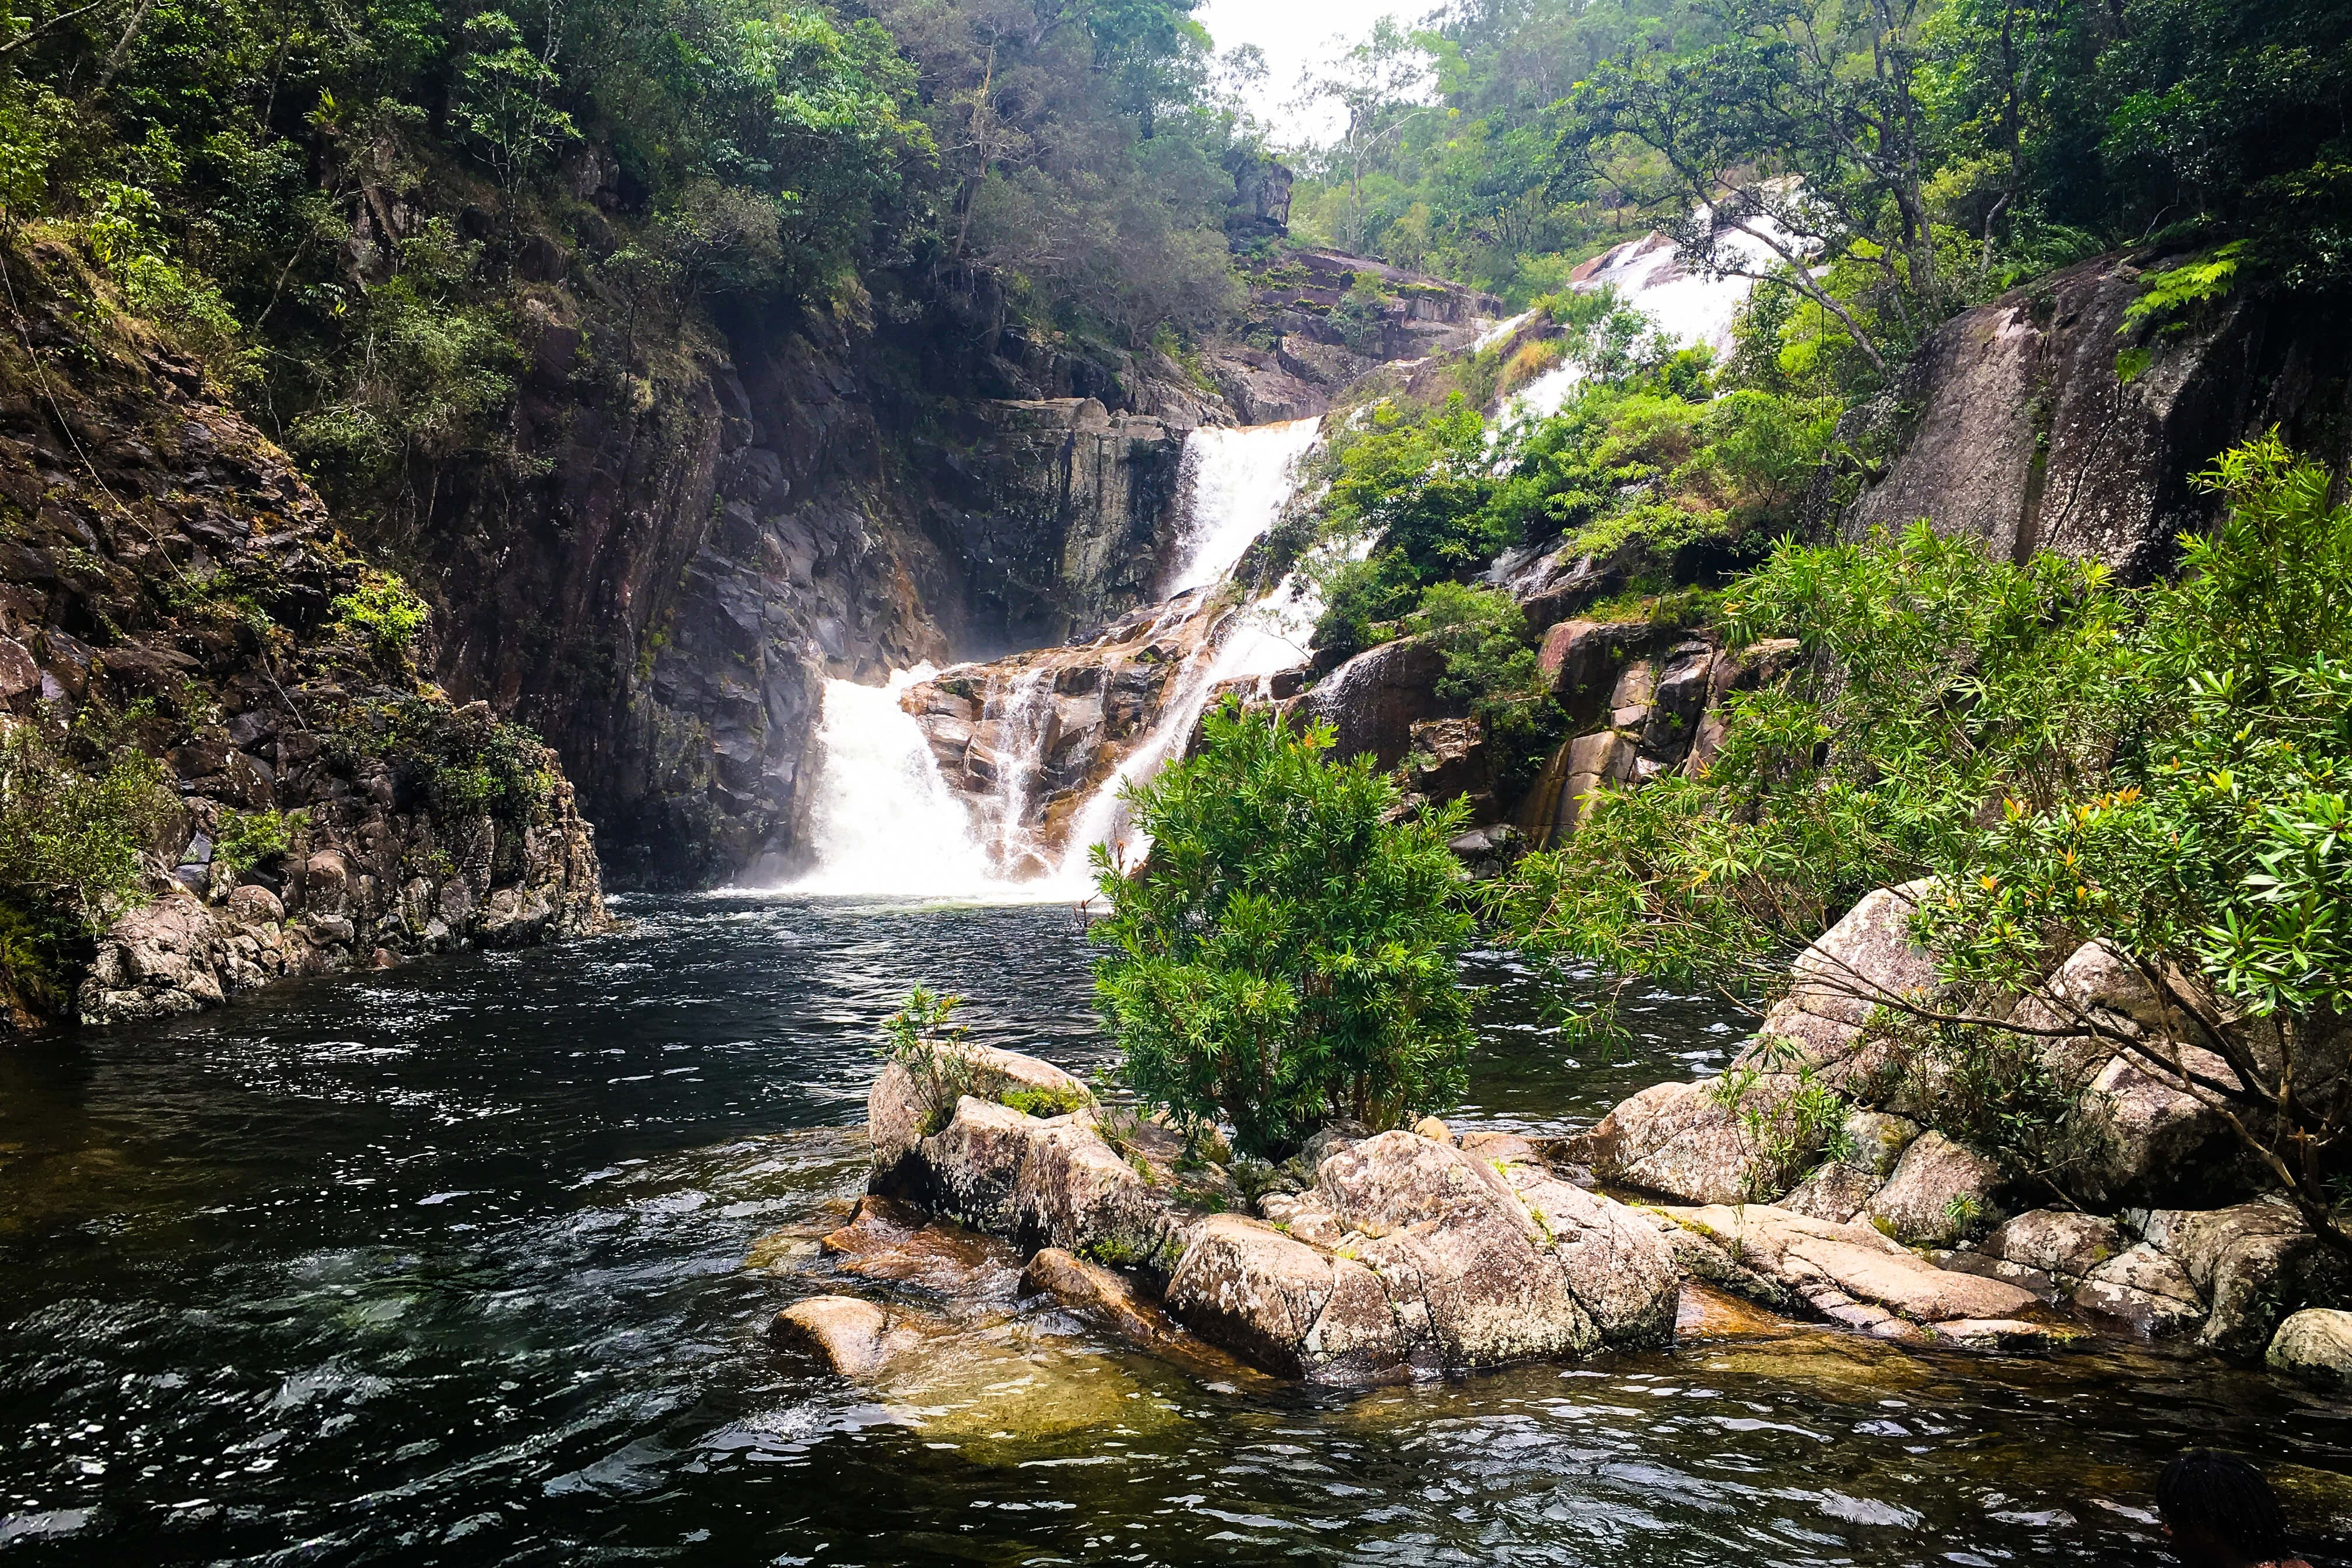 Behana Gorge - Attractions